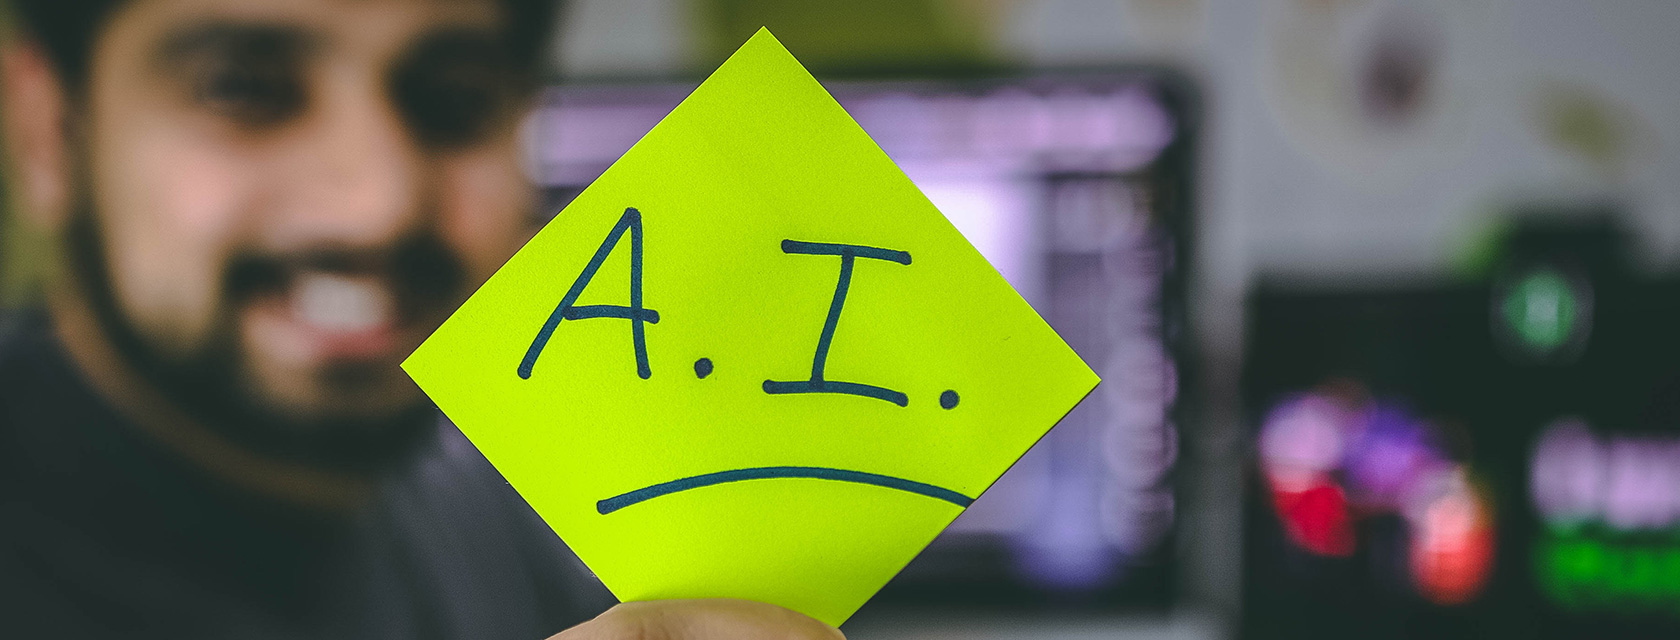 5 AI trends that will impact eCommerce industry in 2019